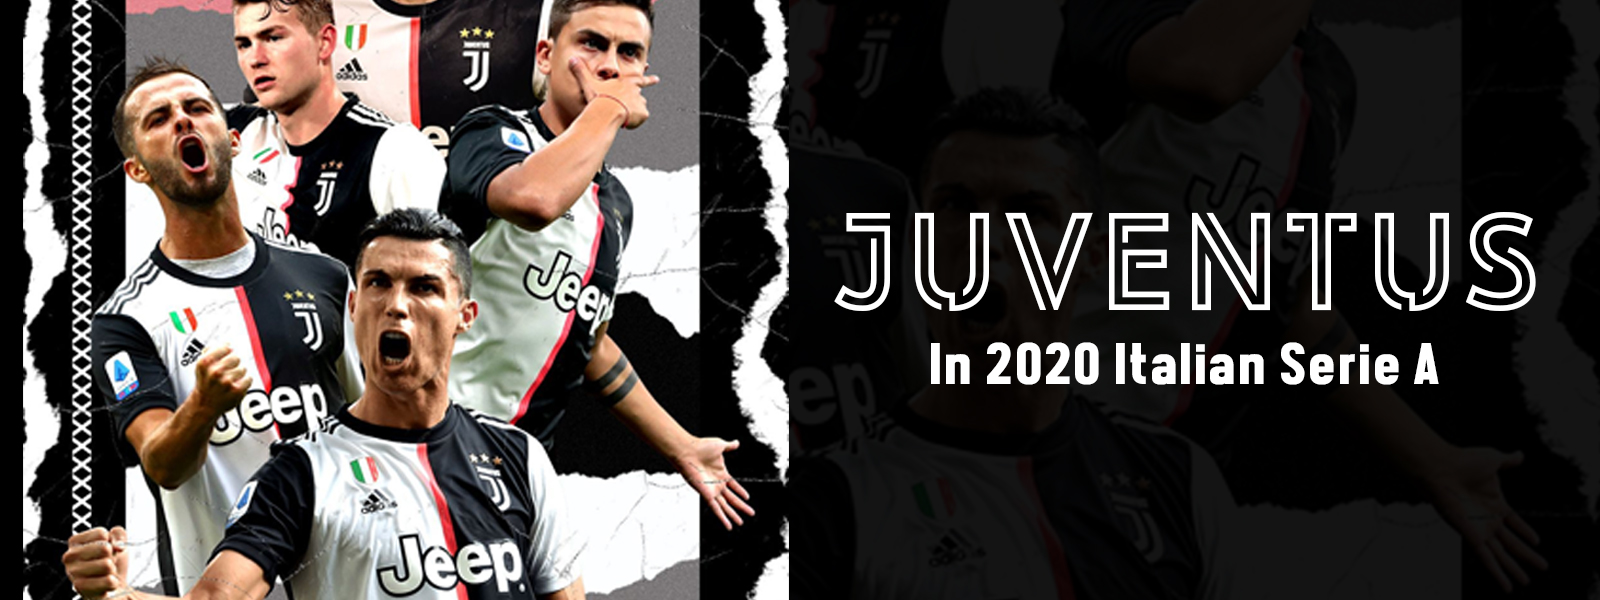 Reviewing Juventus FC In 2020 Italian Serie A